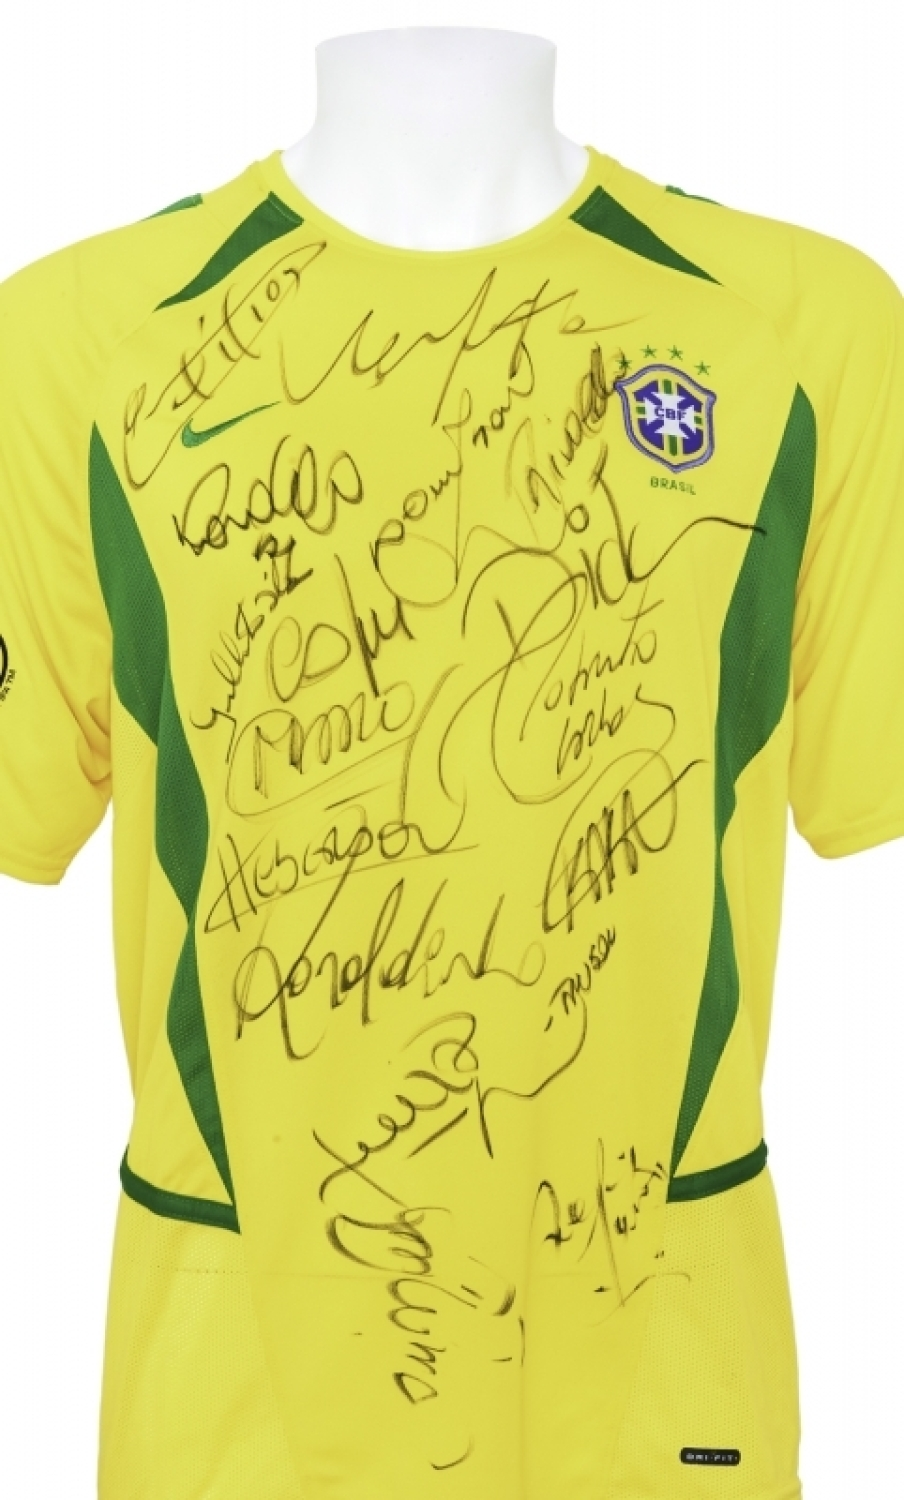 ac3a8e54618 BRAZIL 2002 WORLD CUP TEAM SIGNED JERSEY Please Wait... Click image to  enlarge